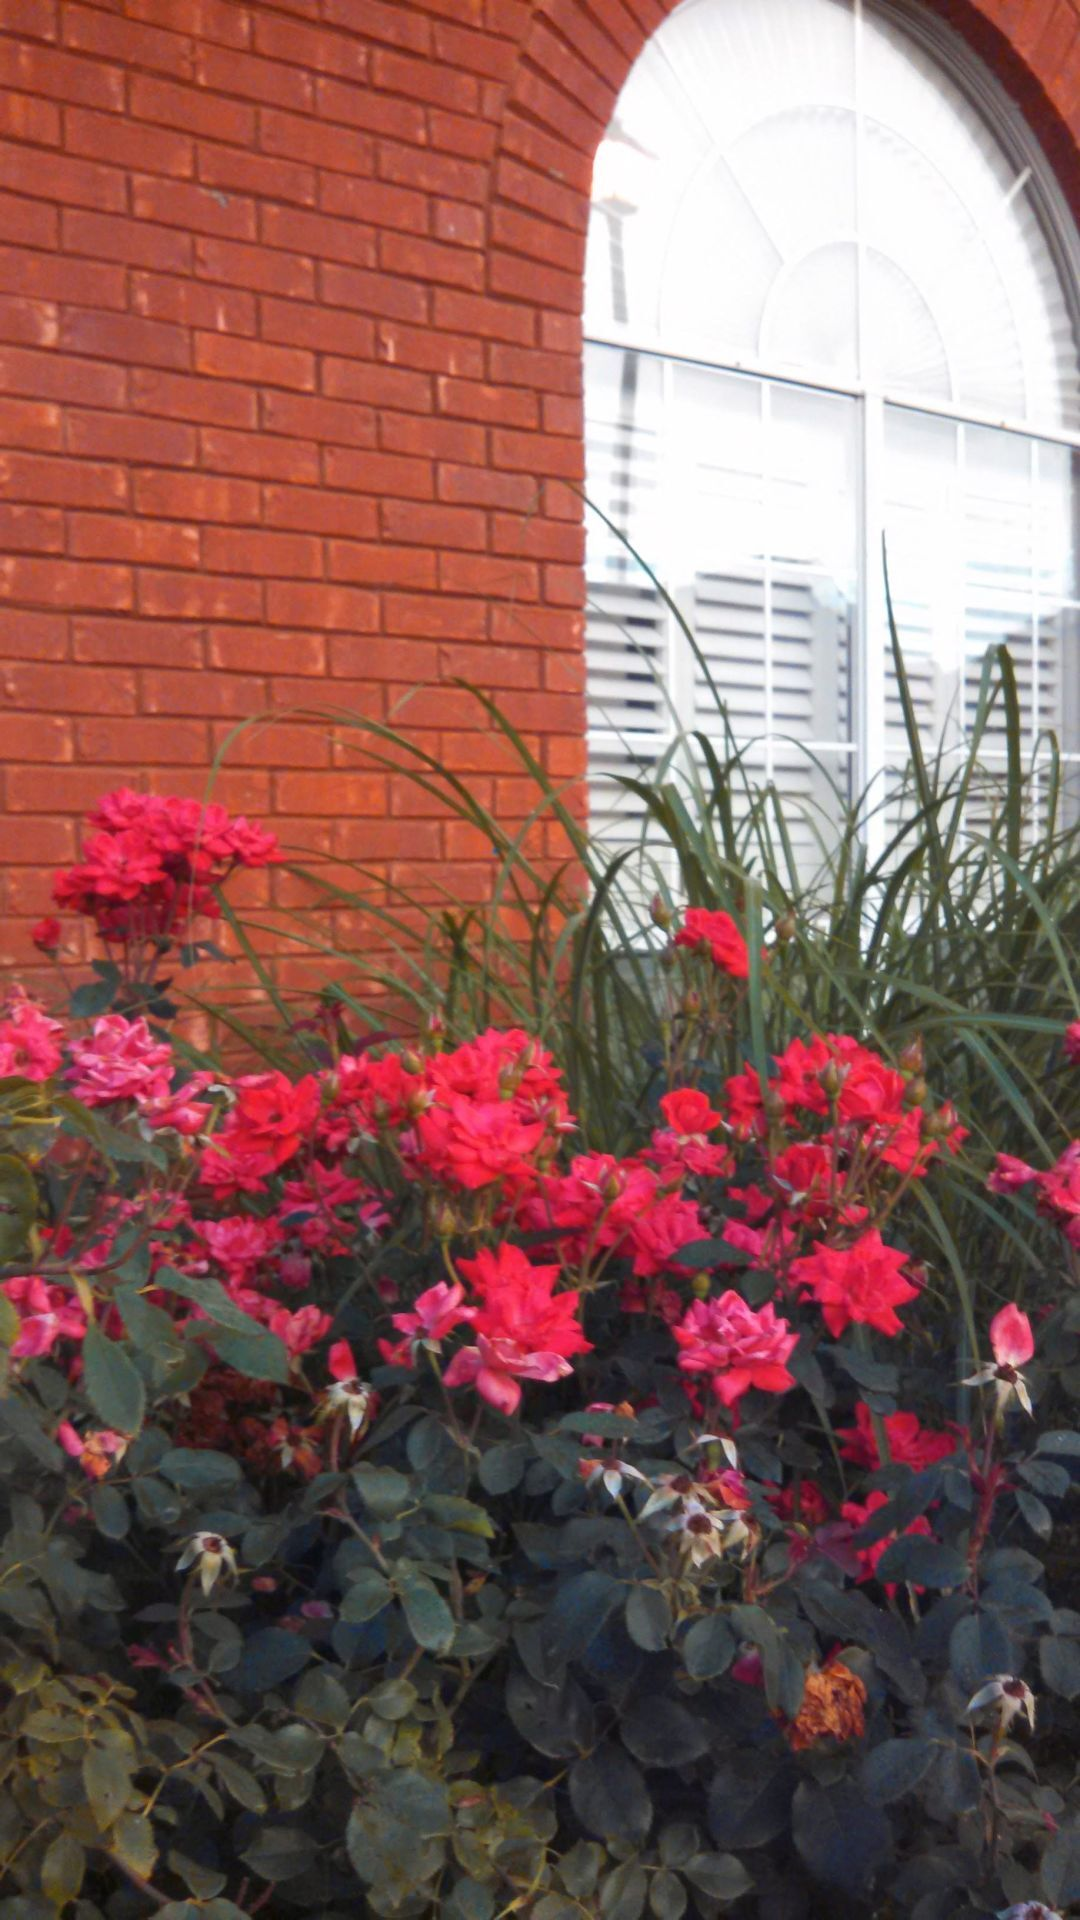 Think before you prune shrubs and ornamentals during the fall